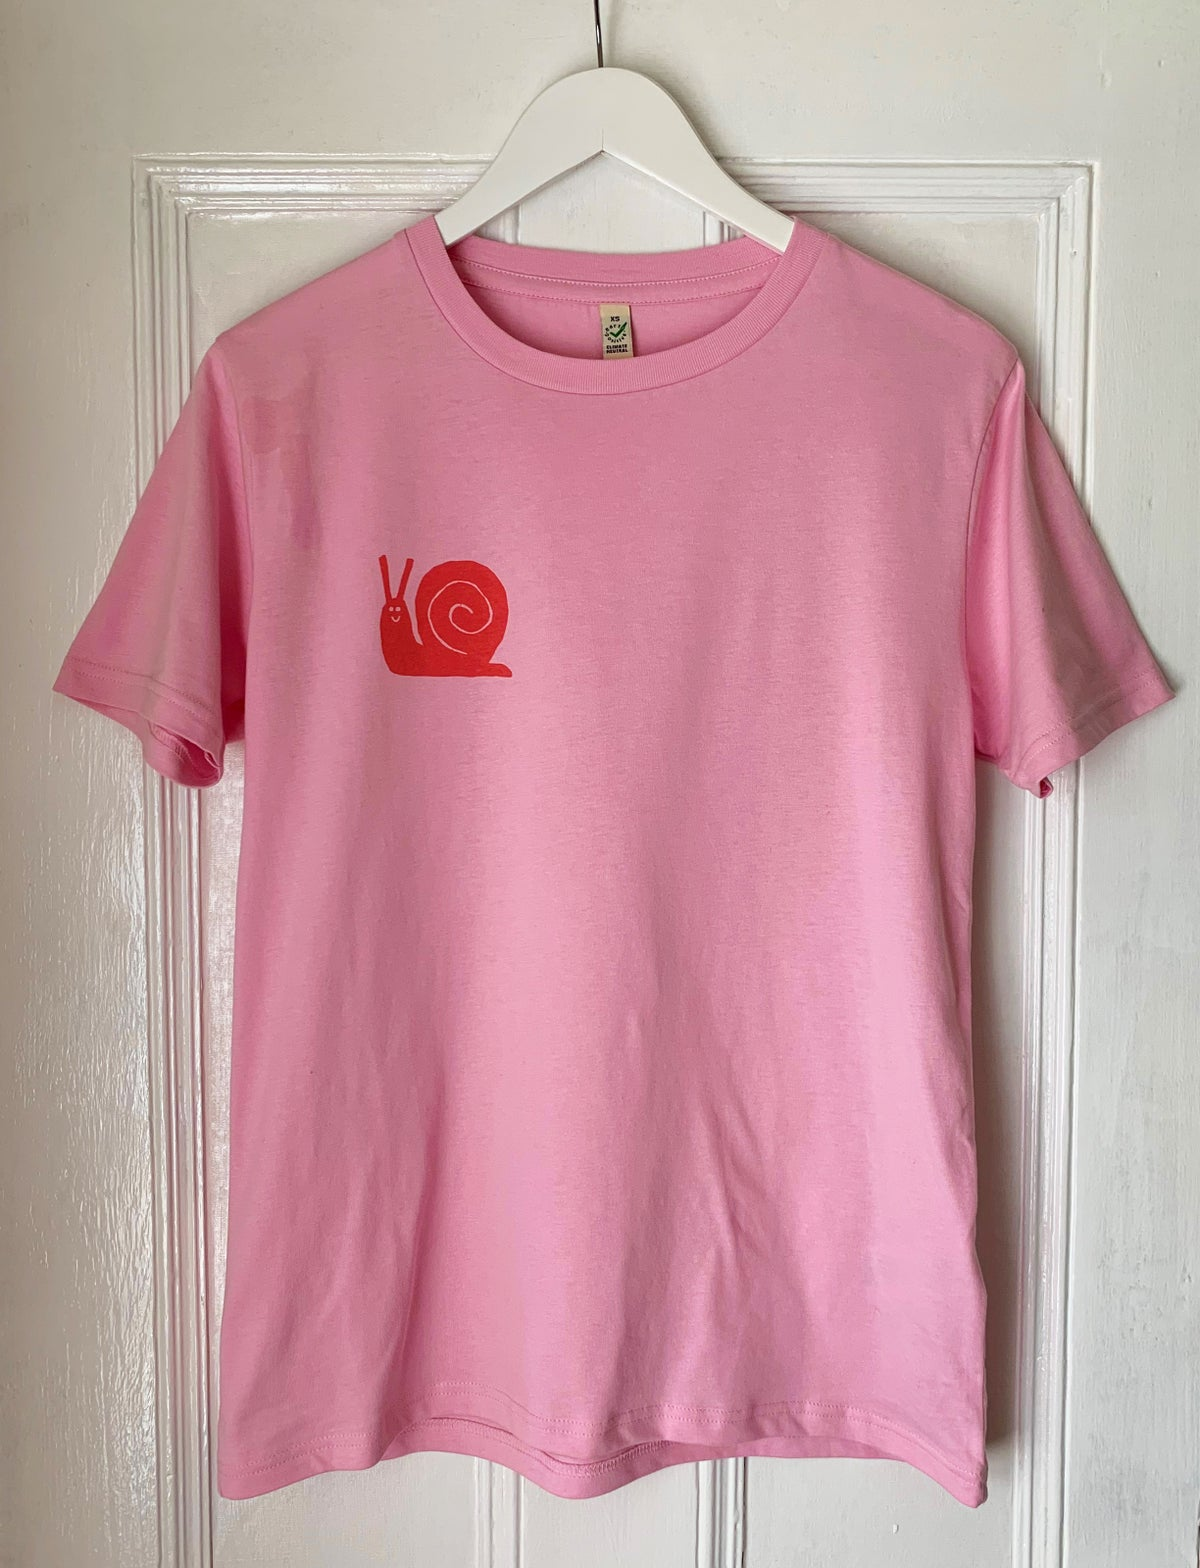 Image of T-shirt, Snail pocket, Screen print, Pink, Unisex